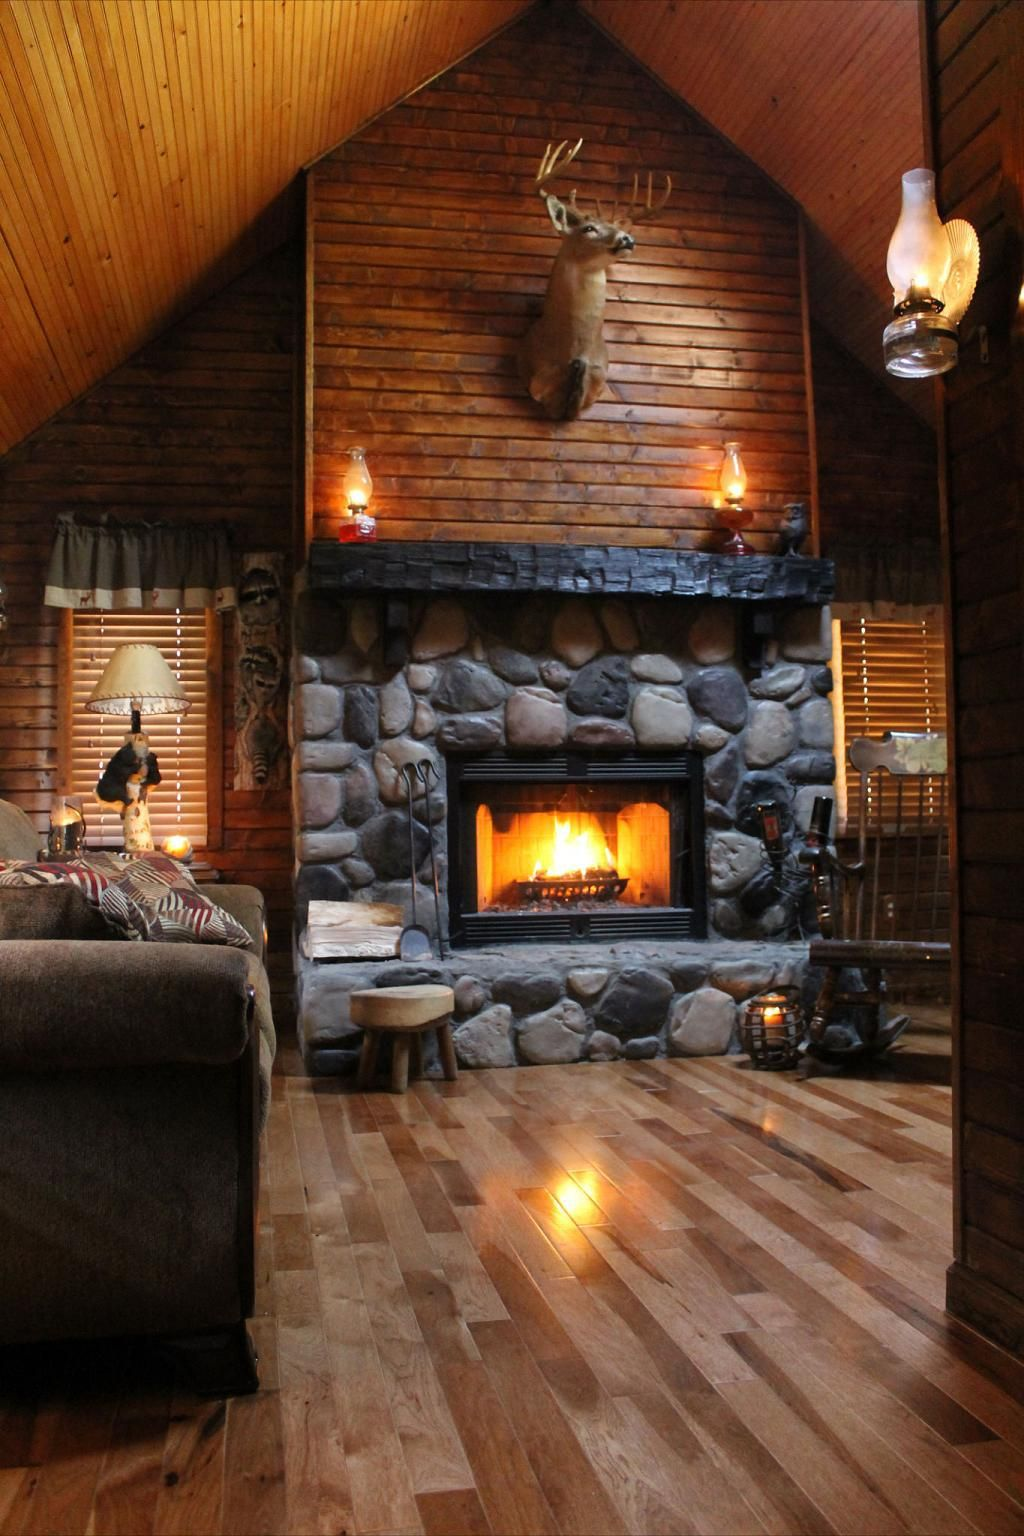 deer lamps cabin lights decorative furniture table decor floor petromak fireplace a of logs wooden lot rustic log pin love and cabins the home sofa head are pinterest